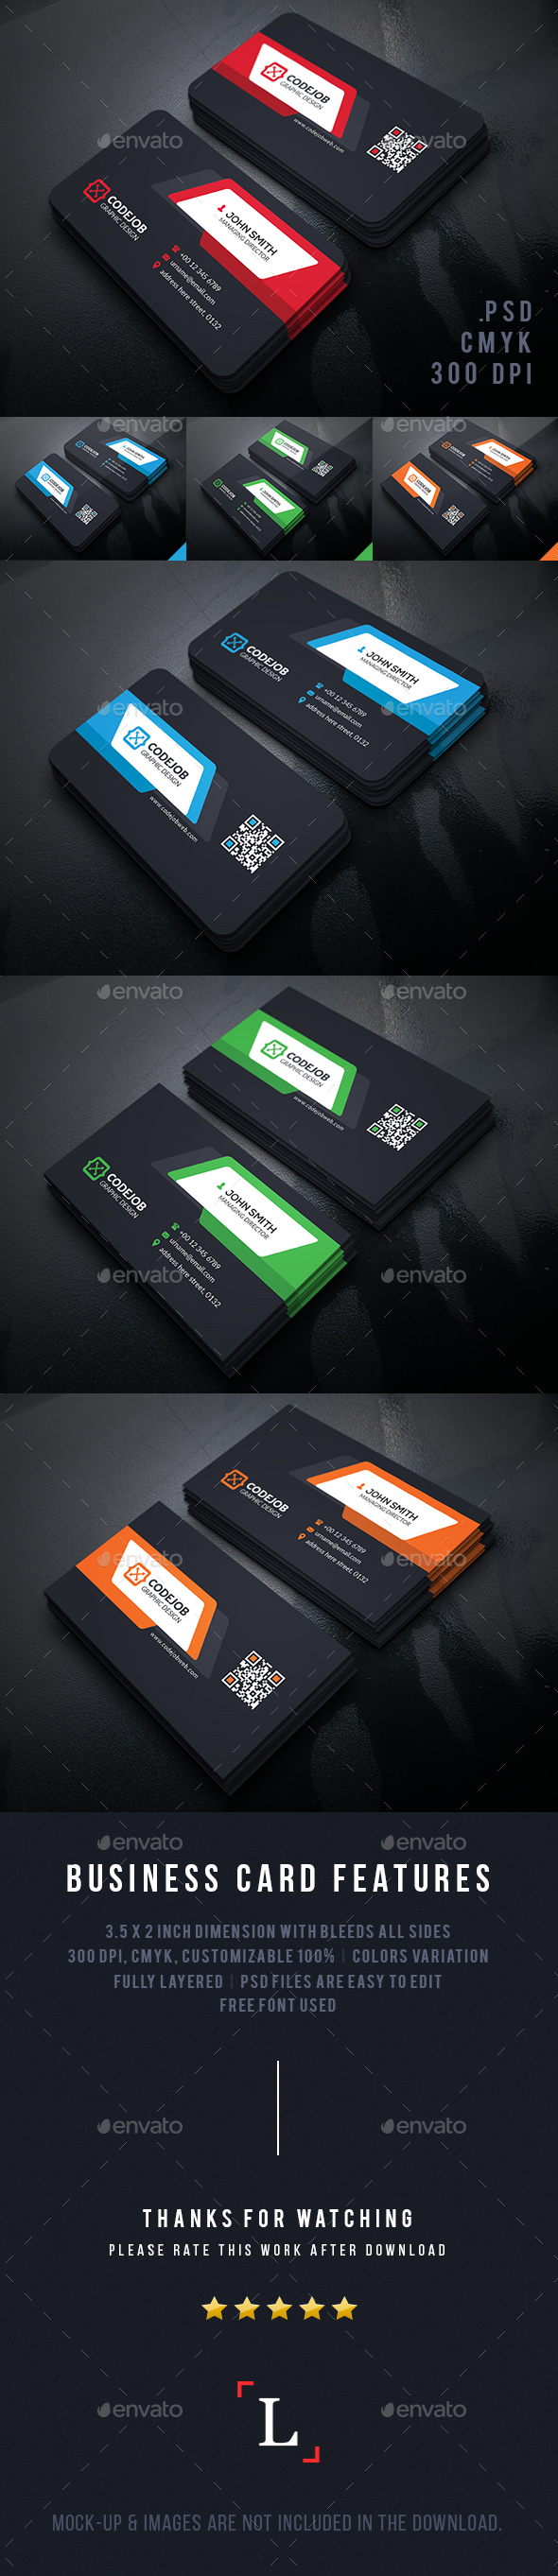 Shape Corporate Business Cards - Business Cards Print Templates